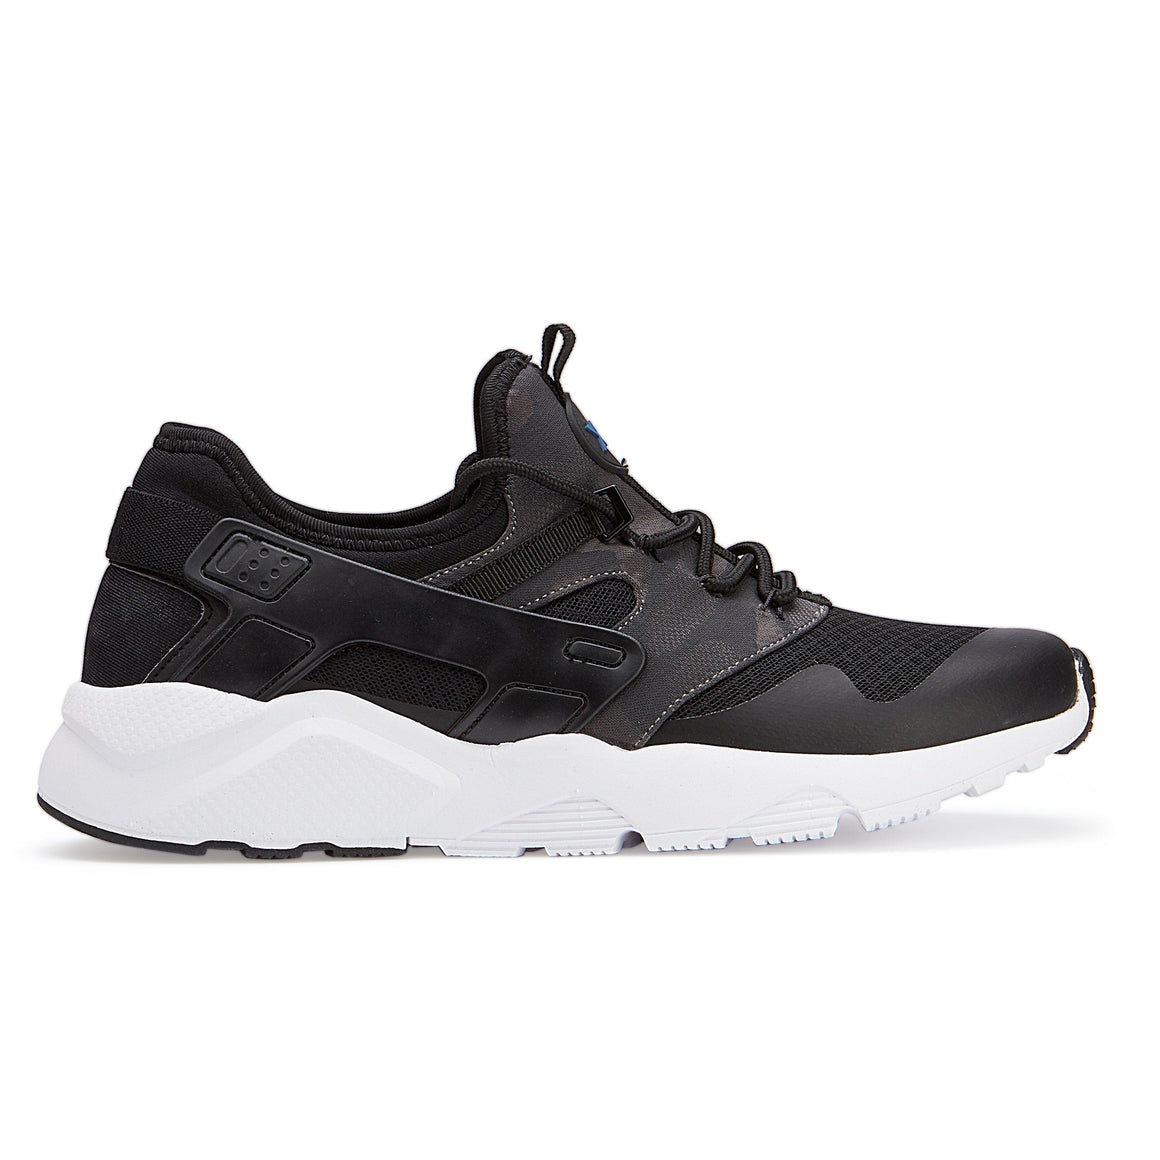 Xray Men's The Makalu Athletic Lowtop Sneakers BLACK